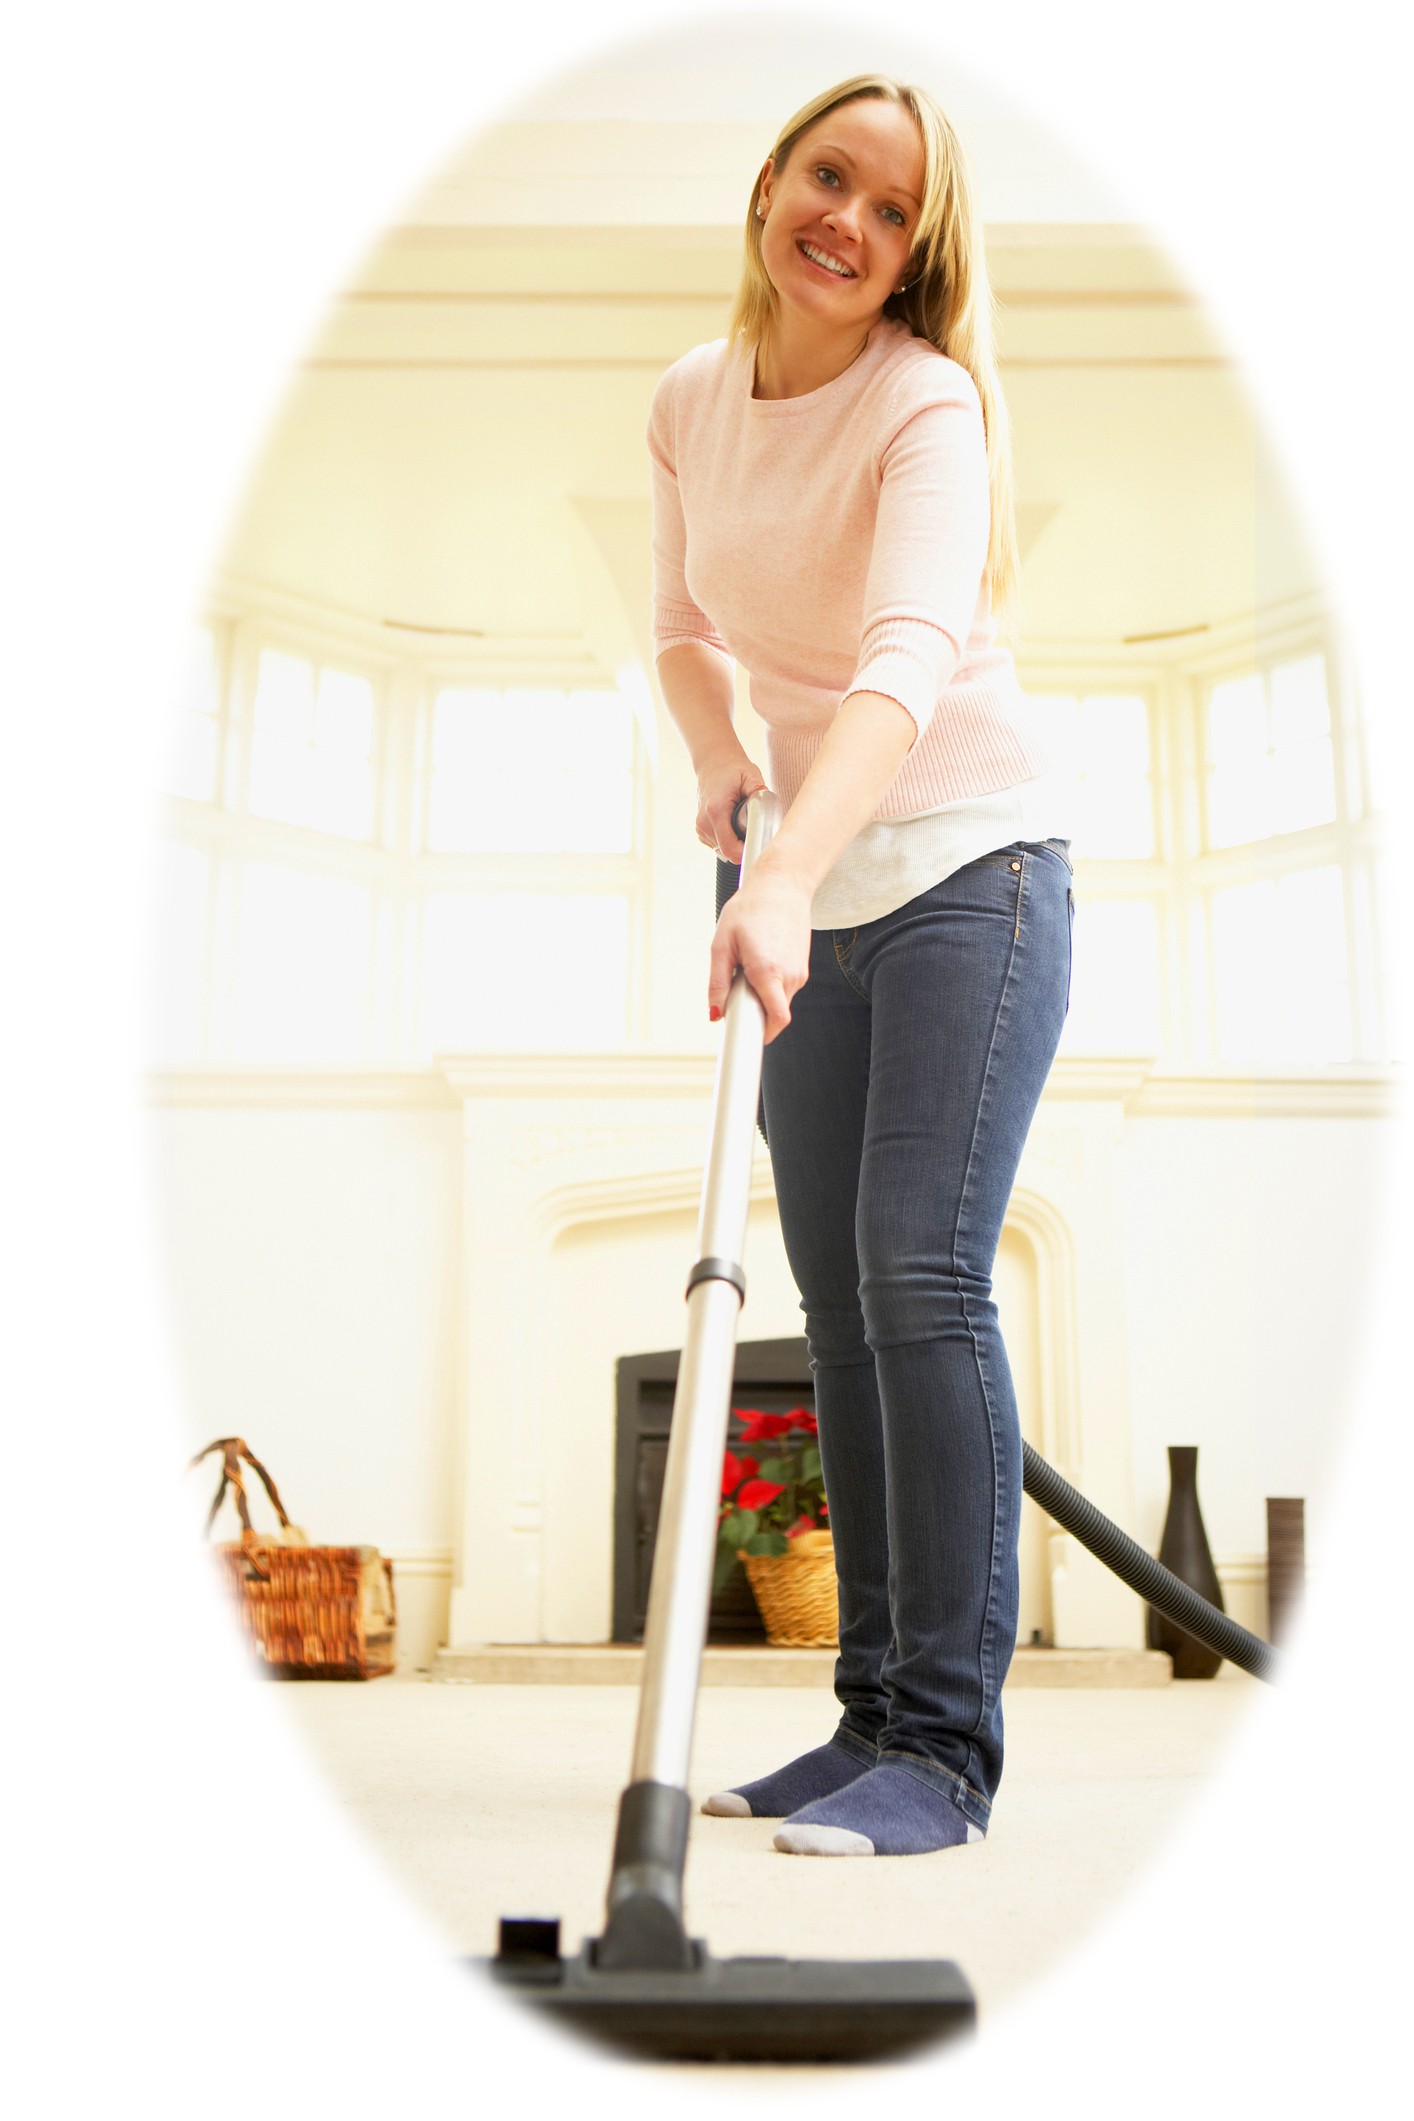 Cleantime Services Resort And Rental Cleaning